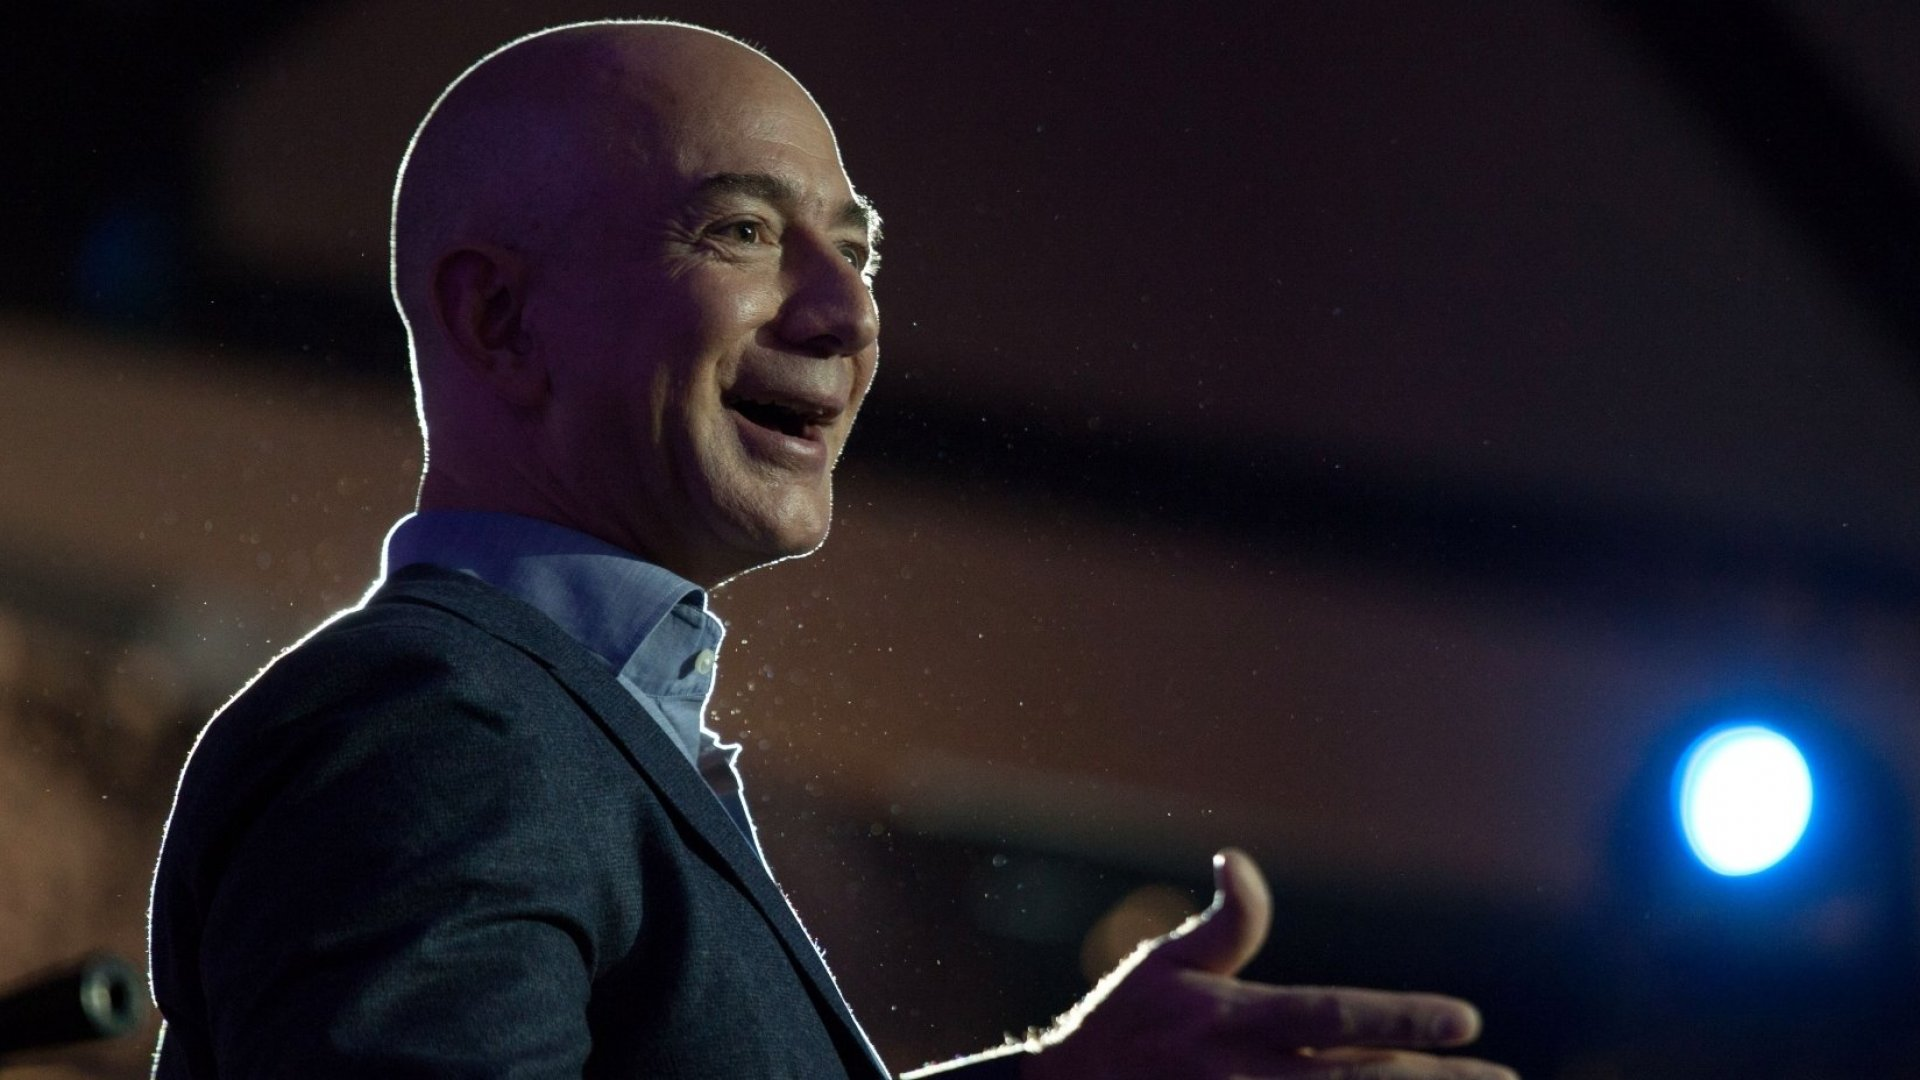 Amazon Received 238 Bids for Its Second Headquarters. Now It's Time to Choose